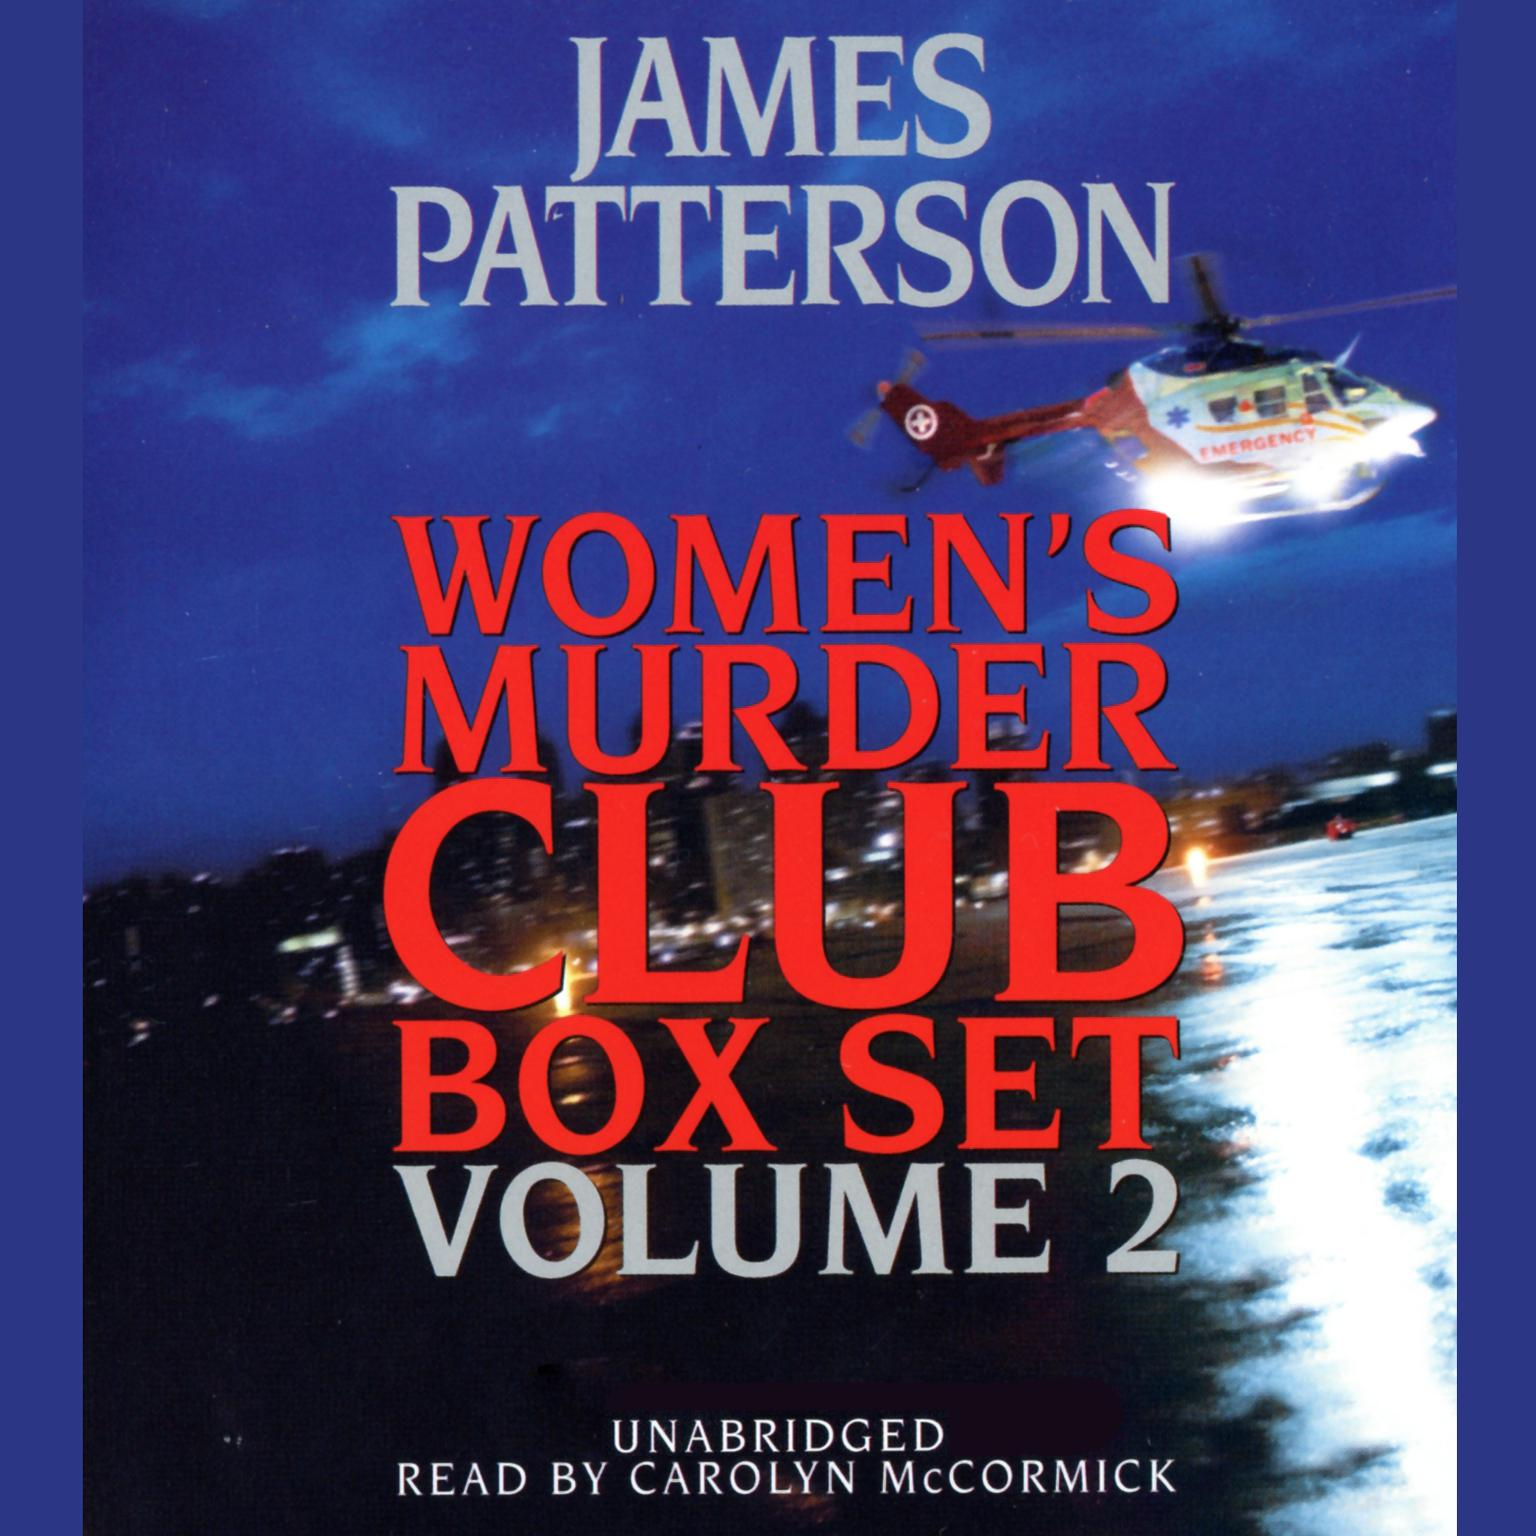 Printable Women's Murder Club Box Set, Volume 2 Audiobook Cover Art